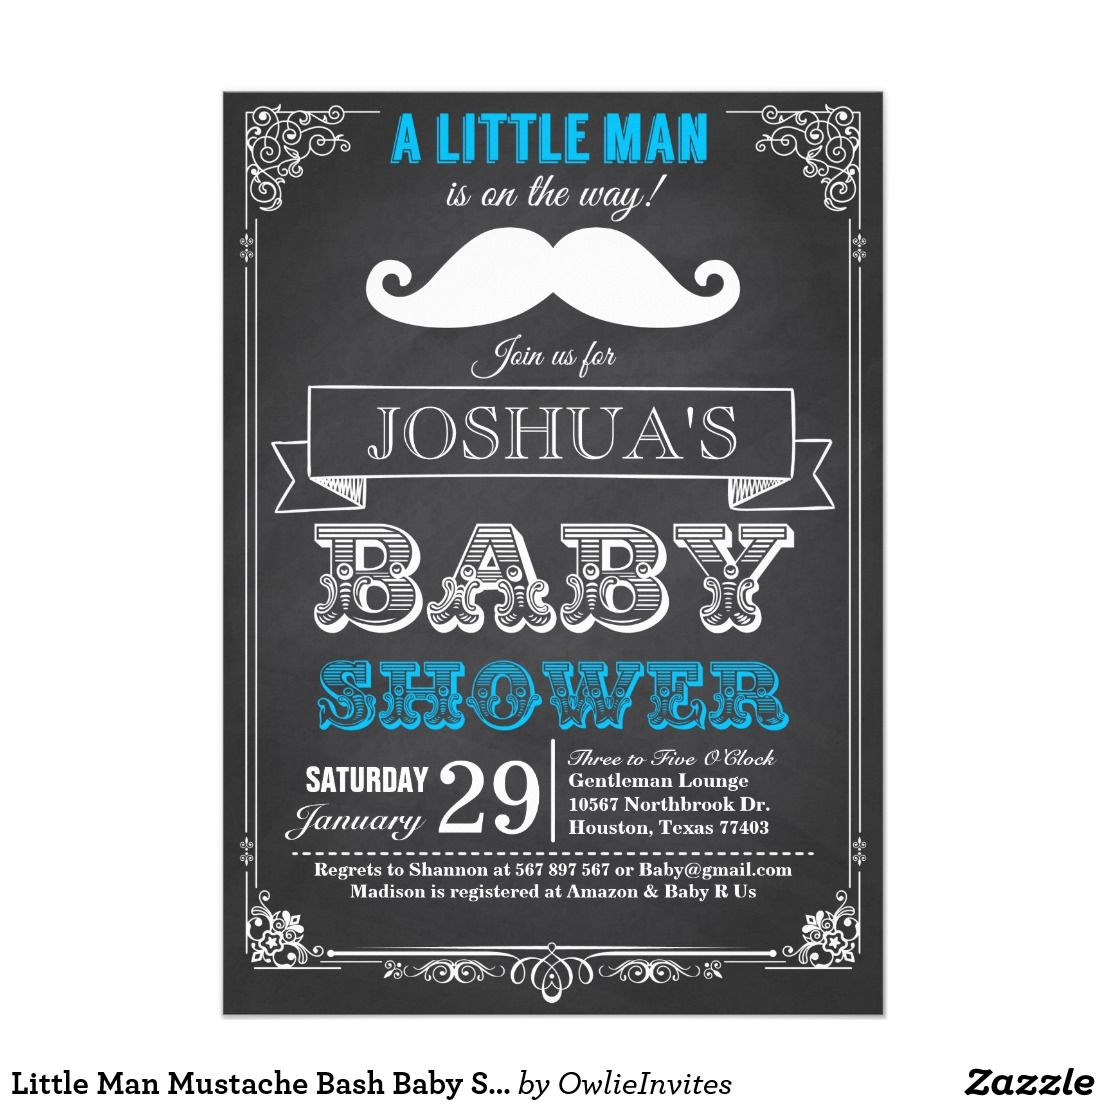 Little man mustache bash baby shower invitation little man little man mustache bash baby shower invitation little man mustache bash celebrate your baby shower filmwisefo Image collections